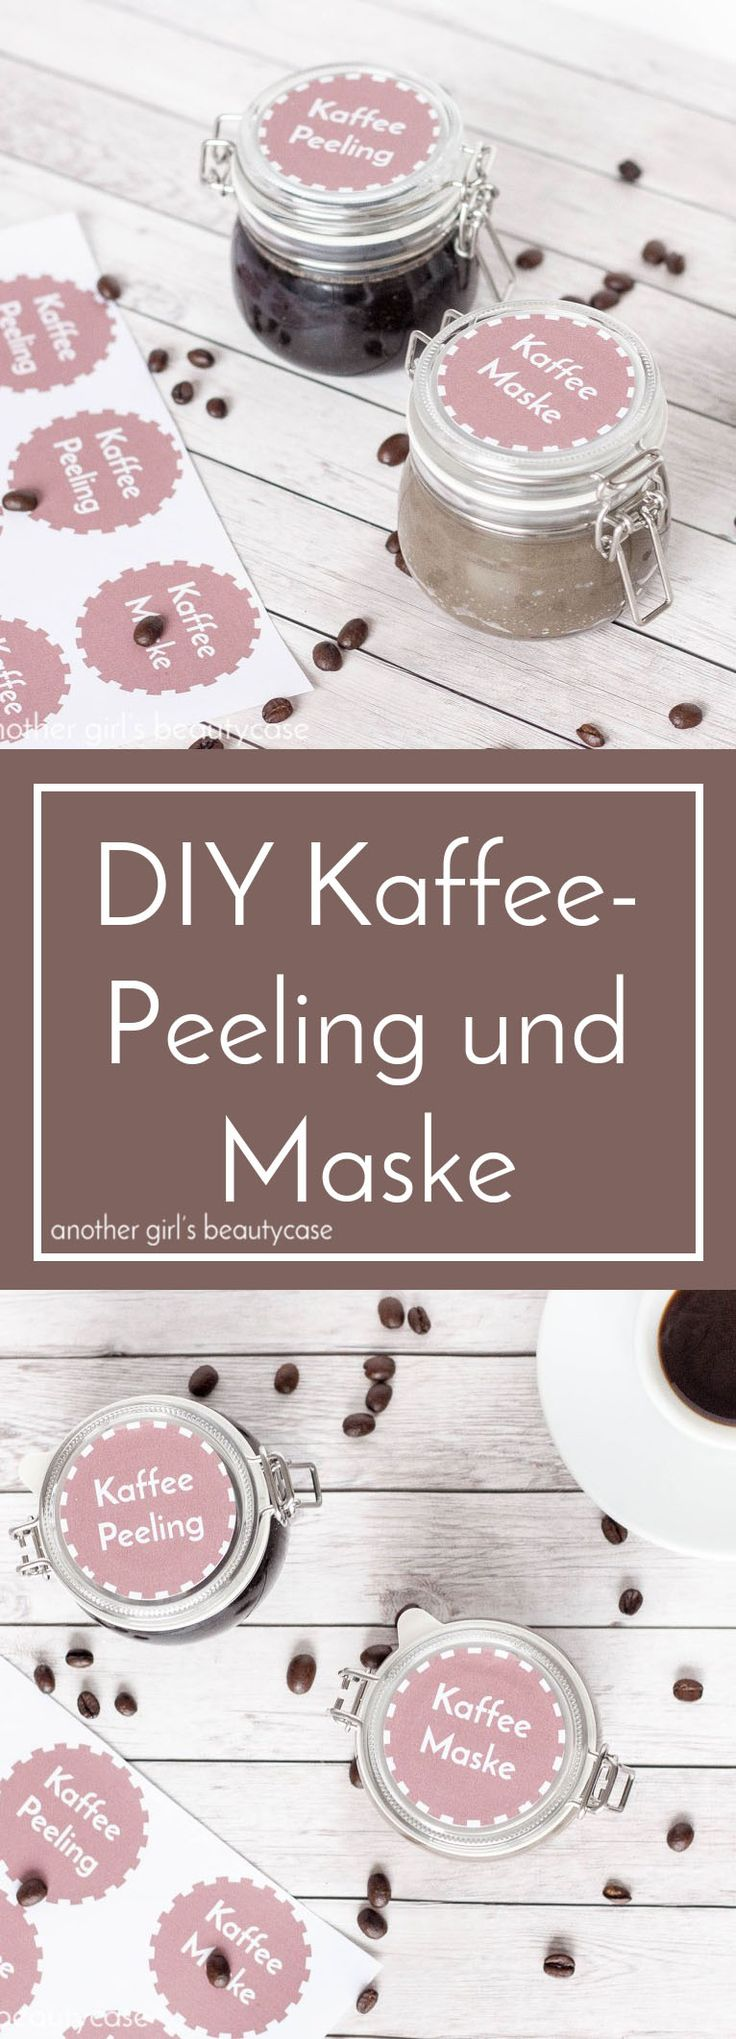 DIY coffee scrub and coffee mask with free labels to download